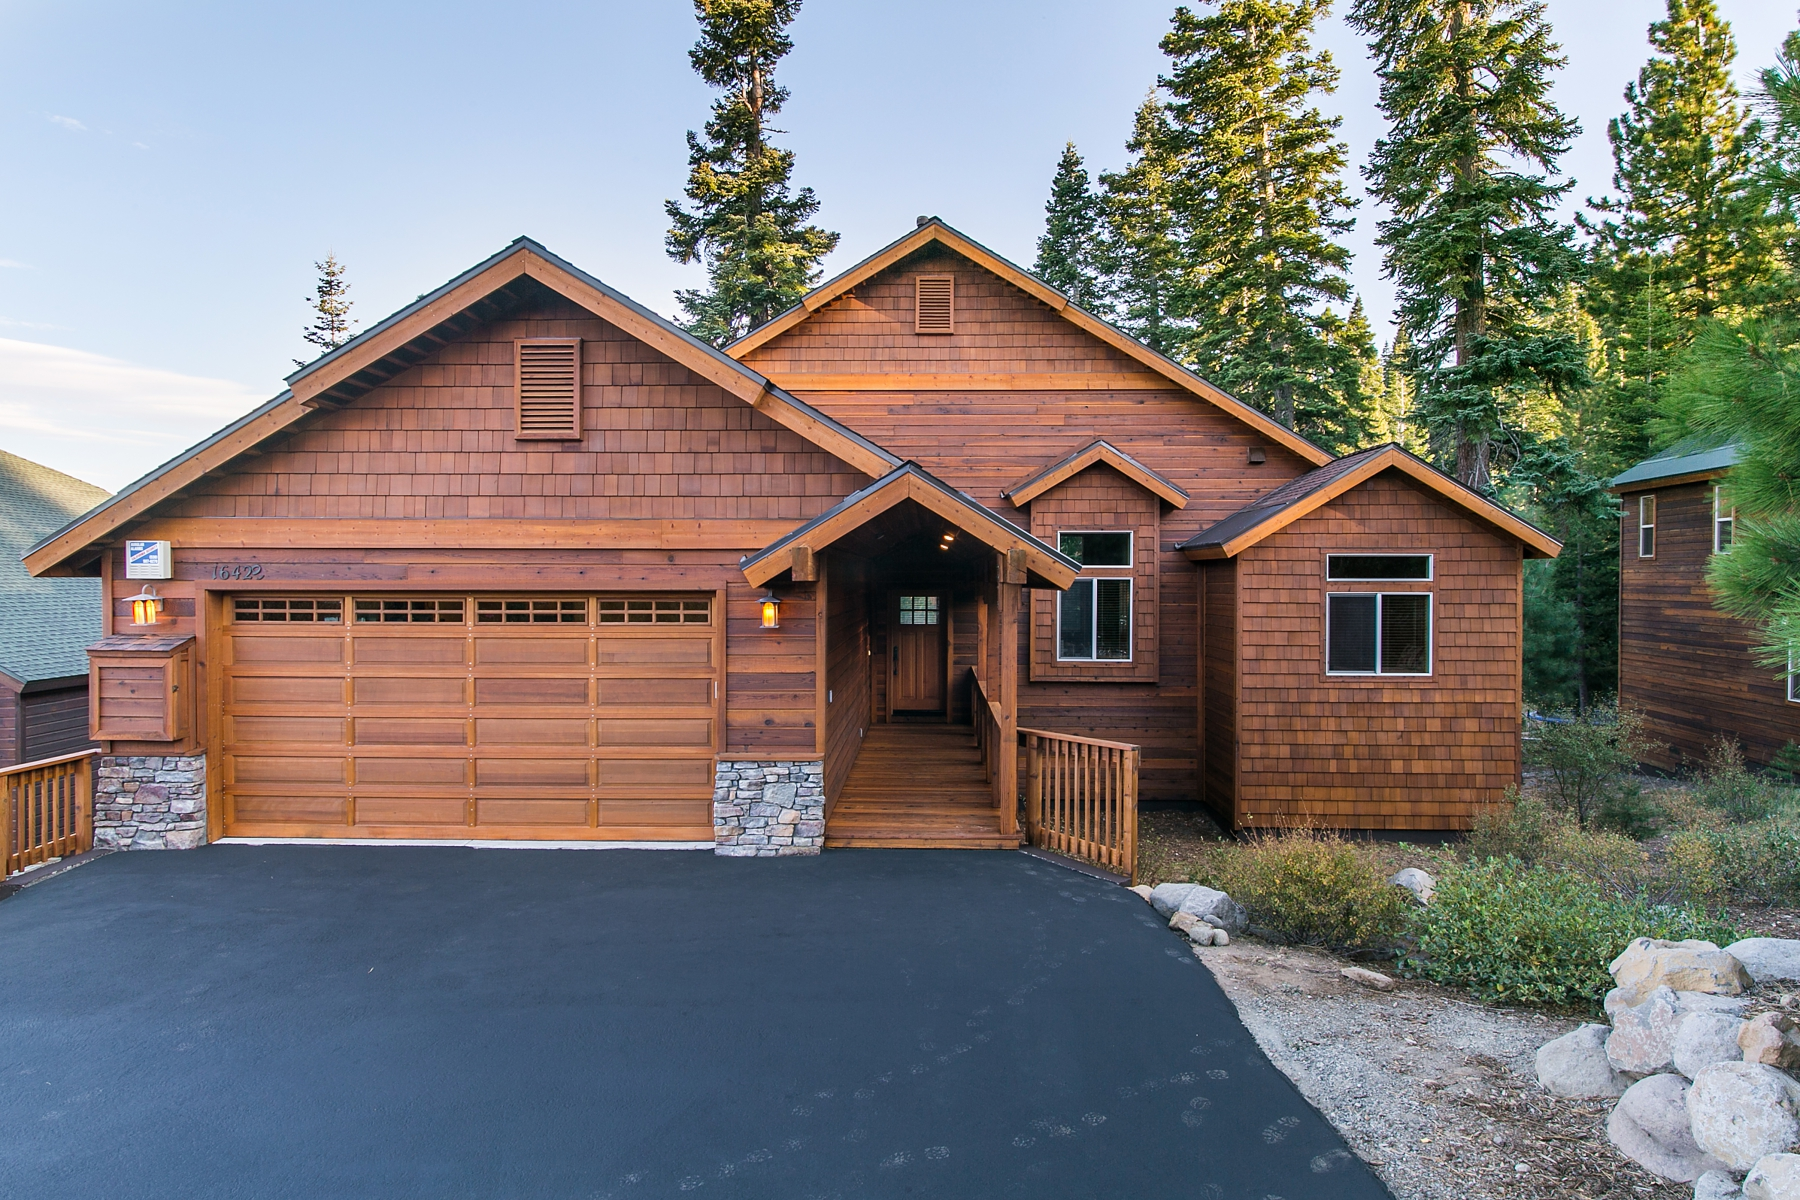 Single Family Home for Active at 16429 Skislope Way Truckee, California 96161 United States